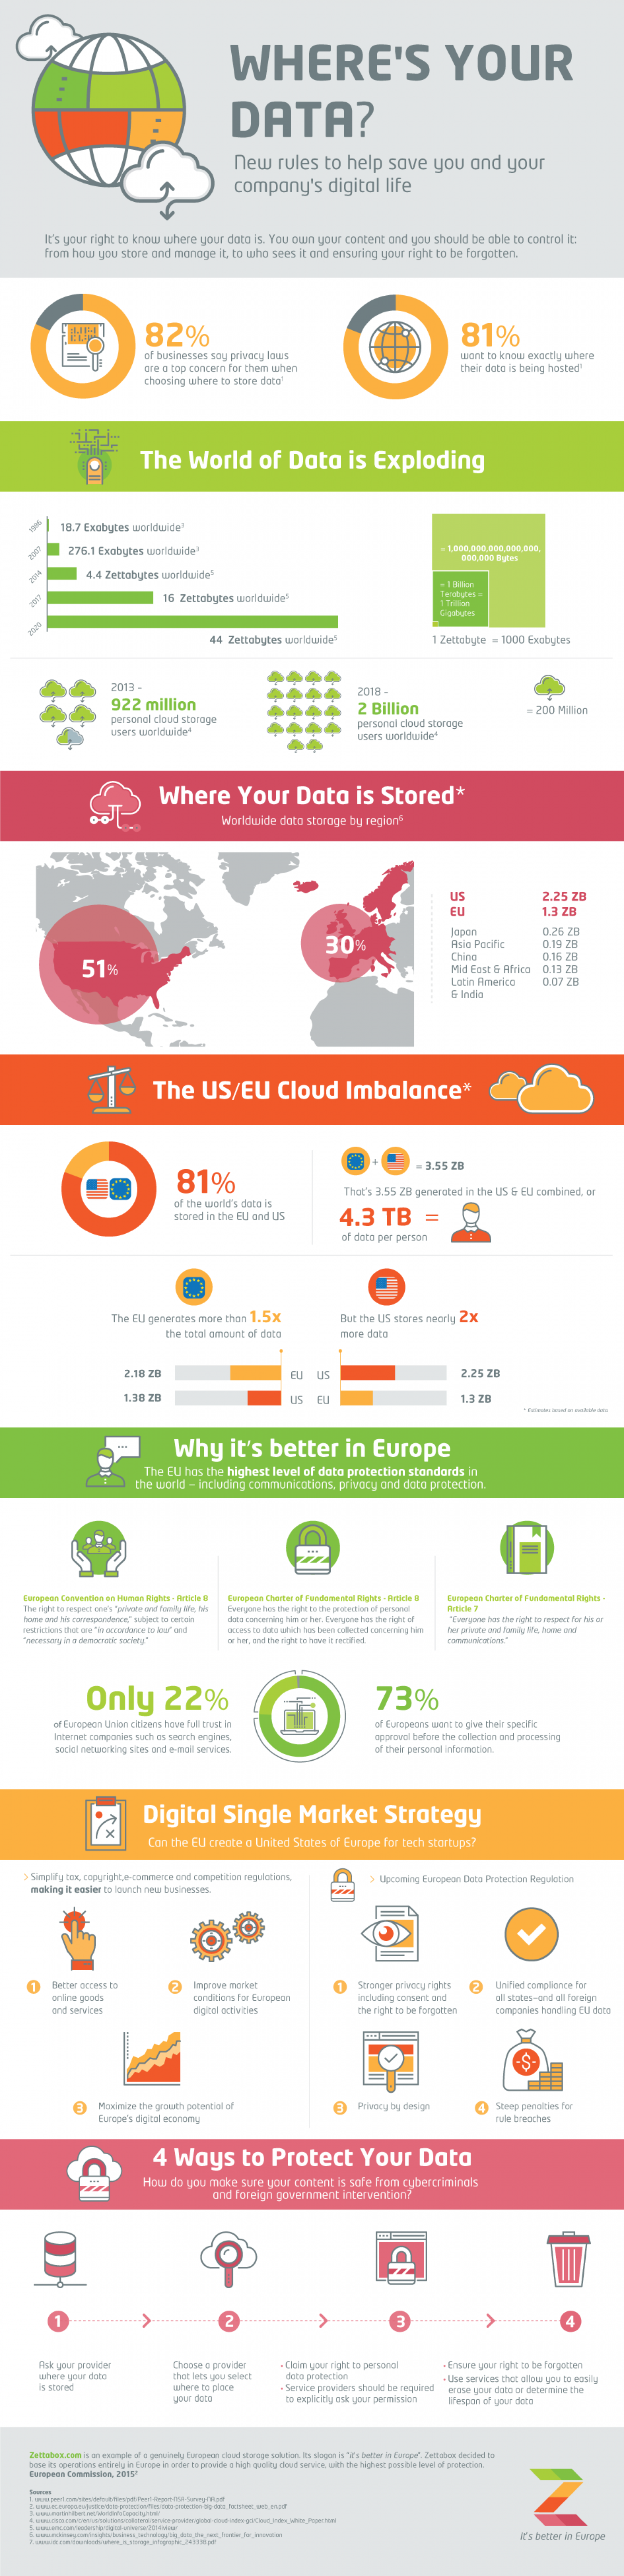 Where's your data? Infographic